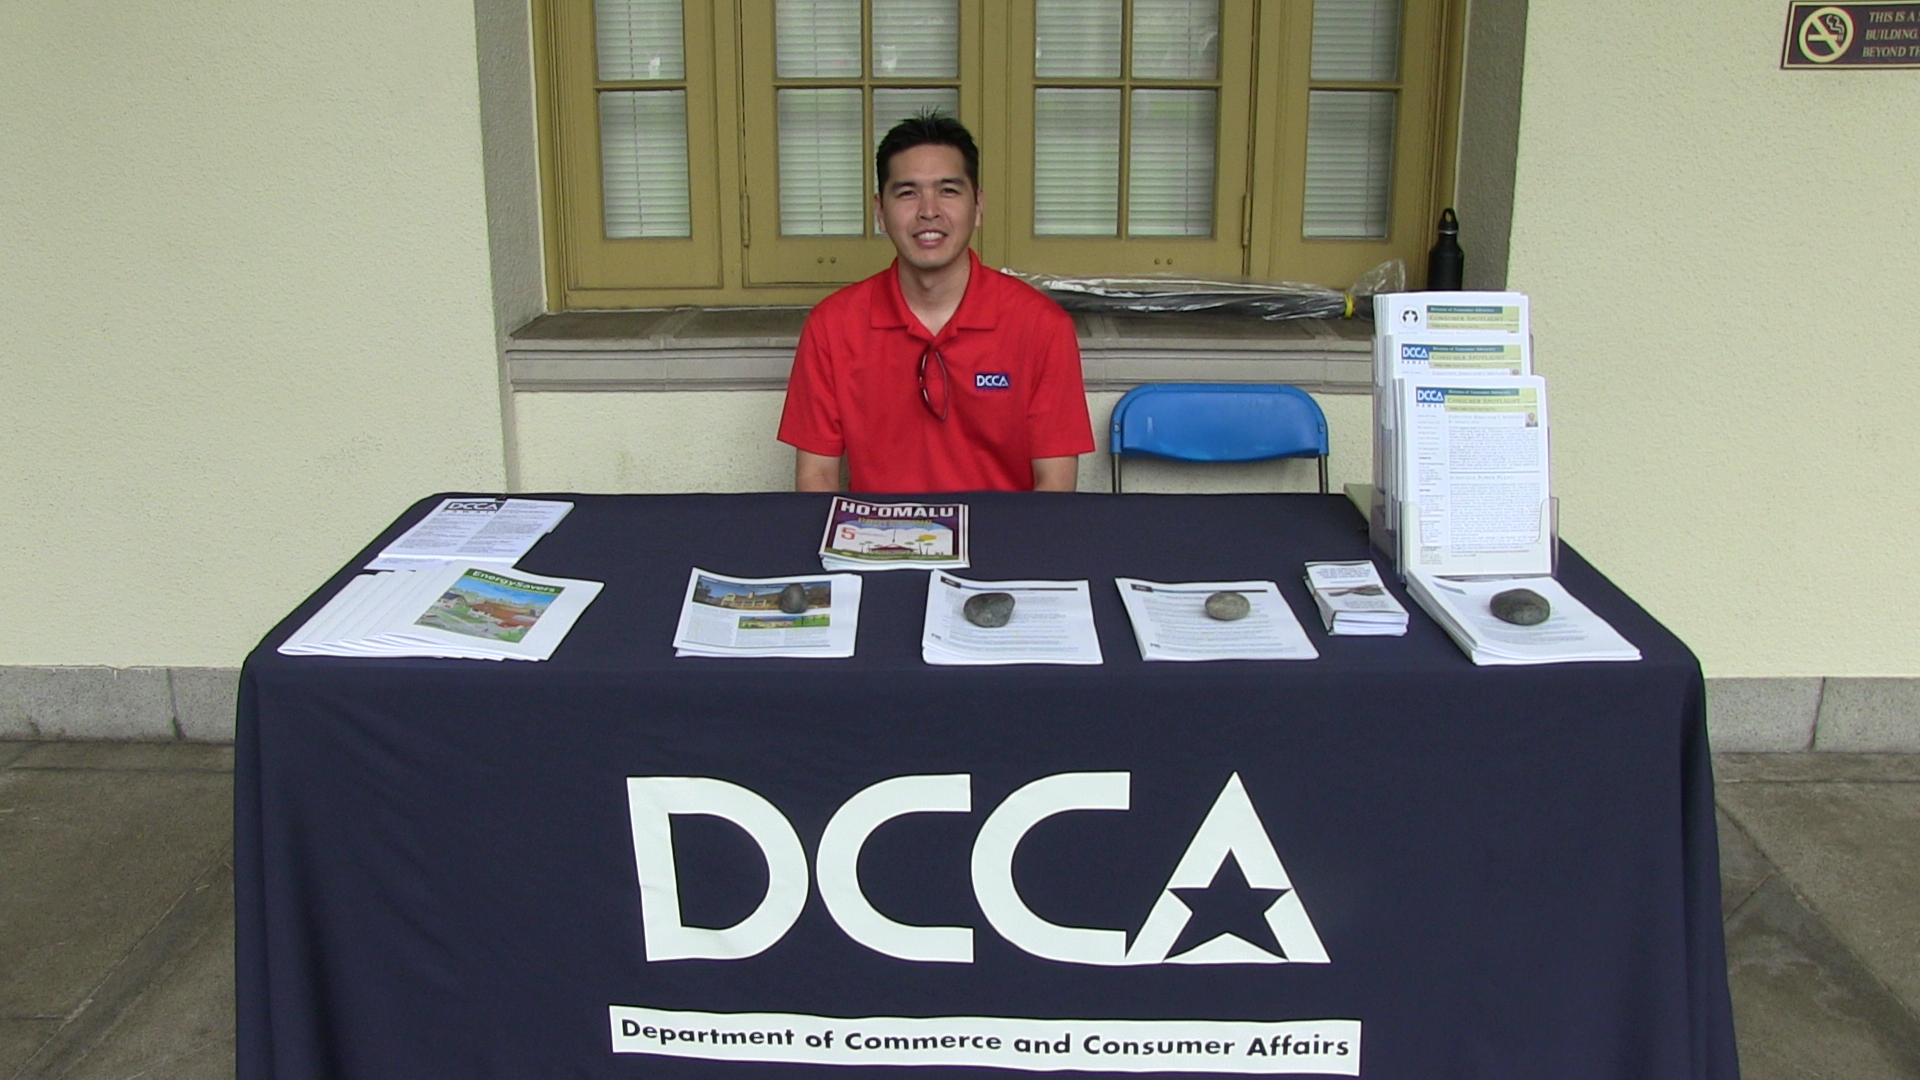 Department of commerce and consumer affairs dcca - Office of the consumer protection board ...